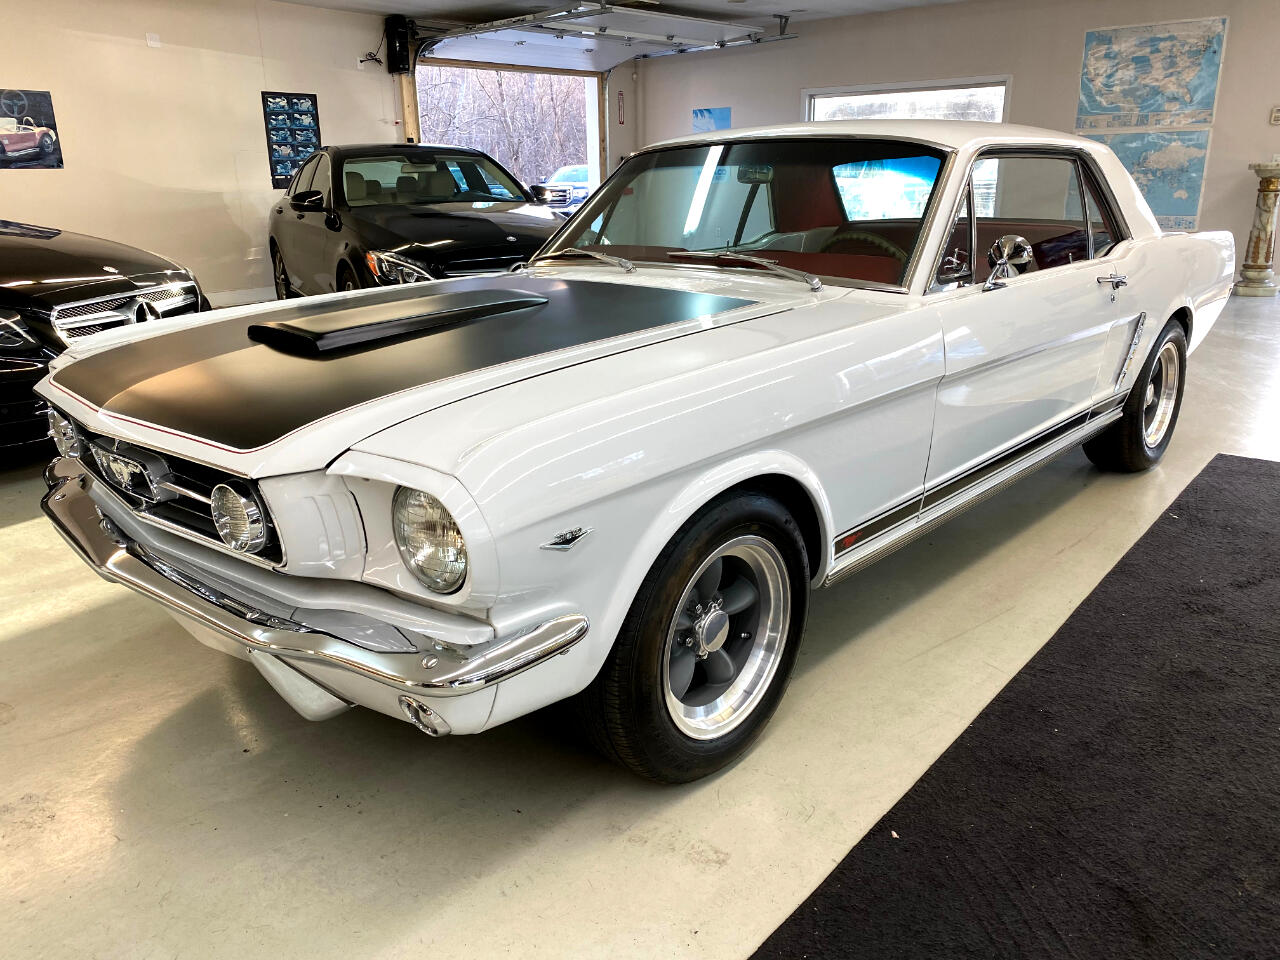 Ford Mustang 2dr Coupe 1965